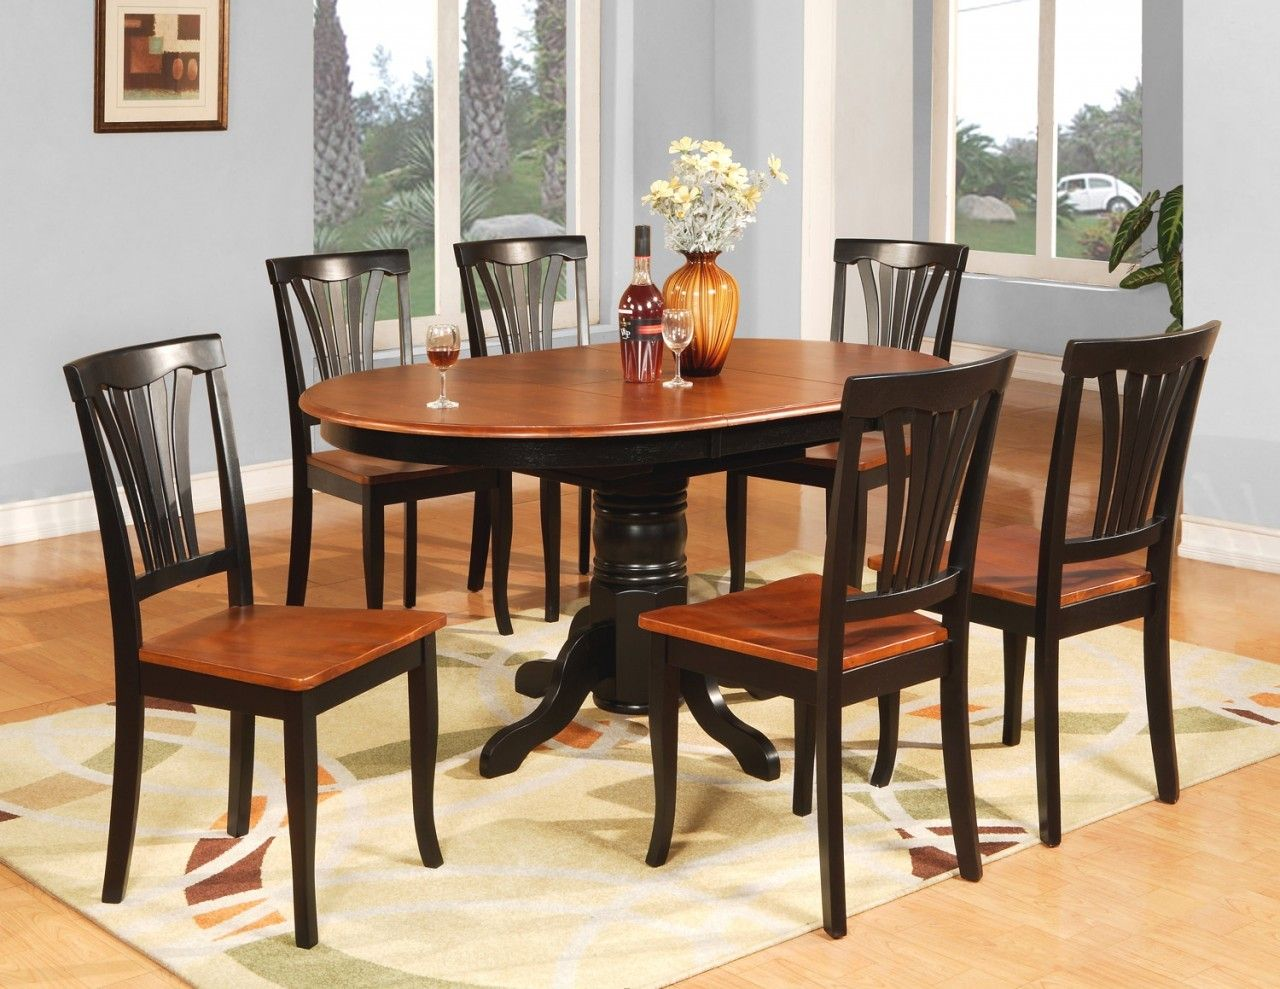 2 tone oval dining tables and chairs avon 5pc oval for Dining room table 4 seater